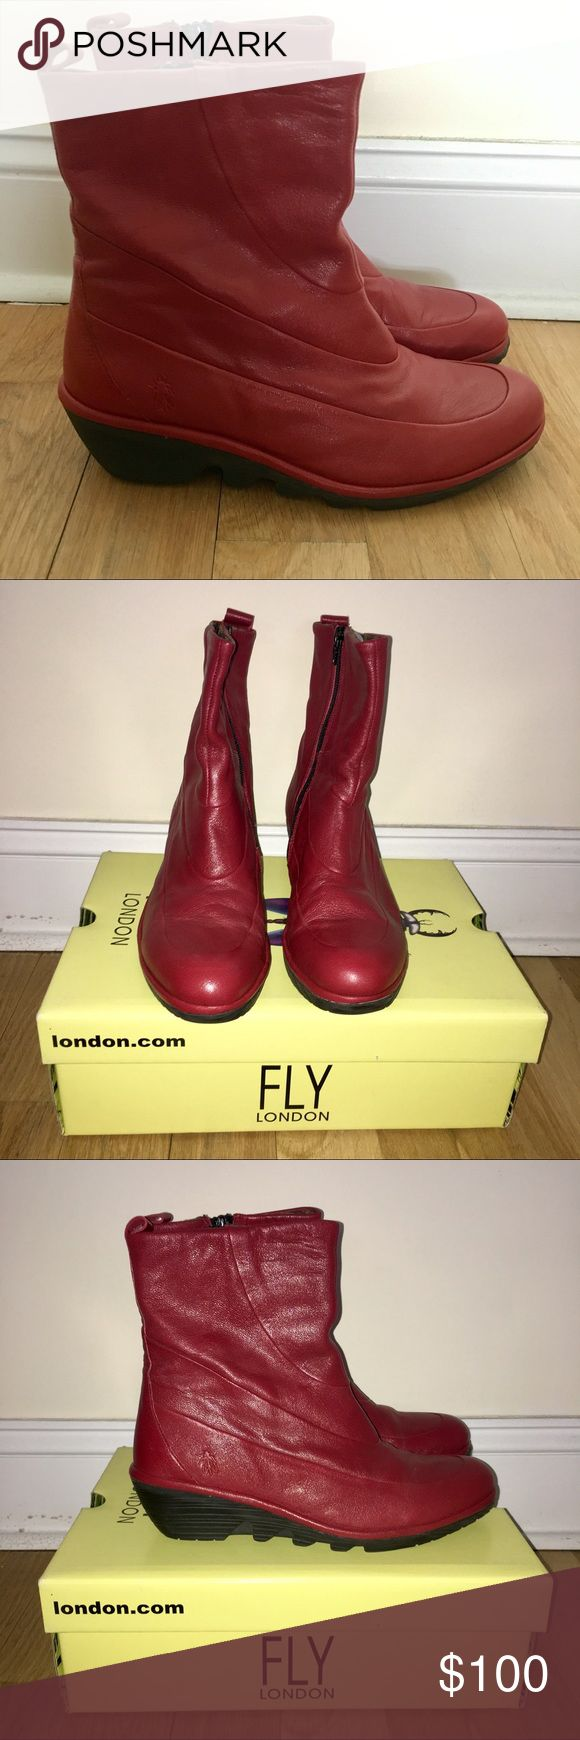 """Dec Sale ❄️ Fly London Boots Fly London """"Pilz"""" boots. Mid-calf height. Round toe. Slim wedge heel. Full grain genuine leather upper. Lined with soft canvas. Man-made sole with textures thread. Excellent condition. Fly London Shoes"""